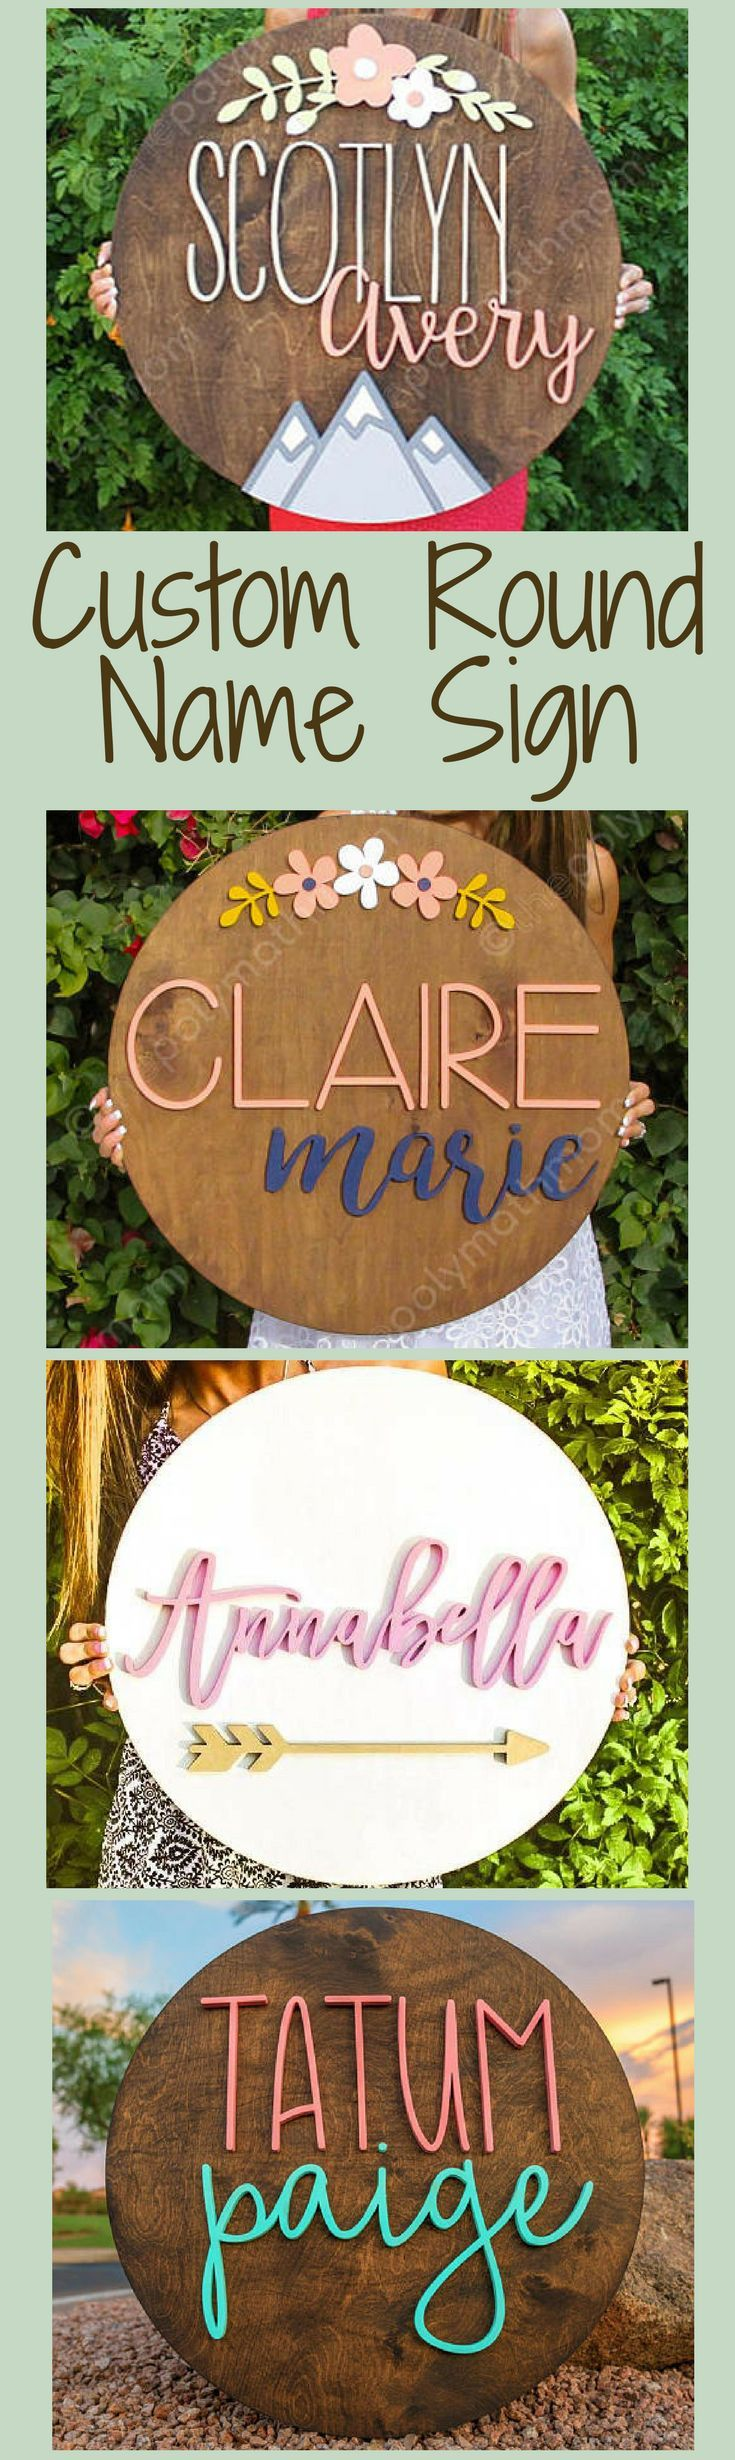 These name signs are so individualized! The cut out names and decorations are amazing! Cut Out Name Signs - Floral Arch, Mountain Scene, Round Custom Name Wood Sign, Rustic Nursery Decor, Farmhouse Nursery, Fixer Upper Sign, Family Name Sign, Baby Shower Gift Idea, Housewarming Gift Idea, Modern Girl's Nursery, Family Room Decor, Custom Sign, Name Sign for Gallery Wall, Laser Cut Name, Wedding Gift Idea, Birth Announcements, Farmhouse  Decor, Rustic Decor, Rustic Farmhouse, Fixer Upper Decor…